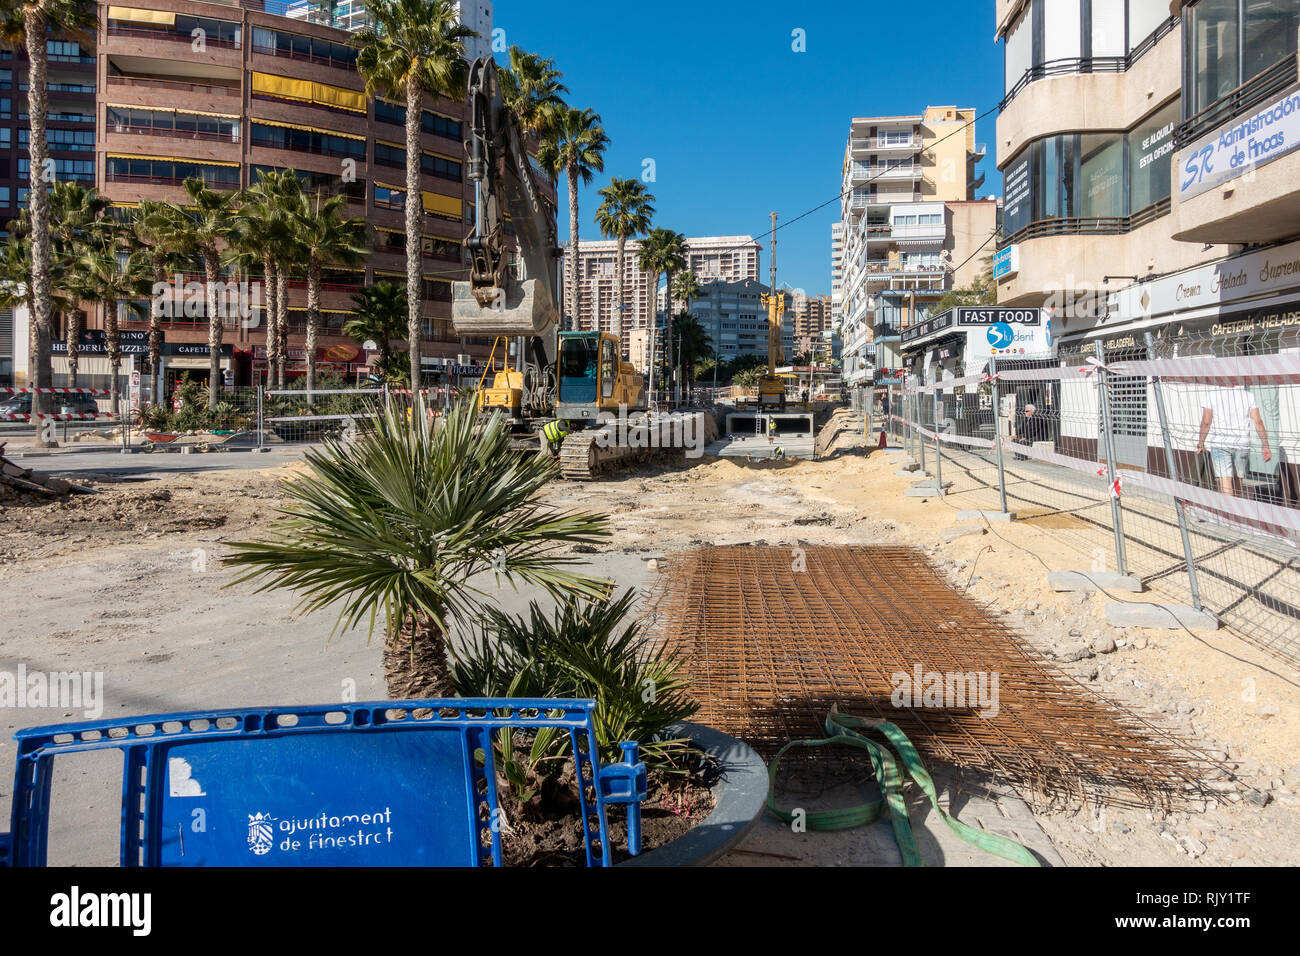 Local council and engineers in La Cala, Alicante province, Spain instal culverts to channel flood waters under the streets during flash floods Stock Photo